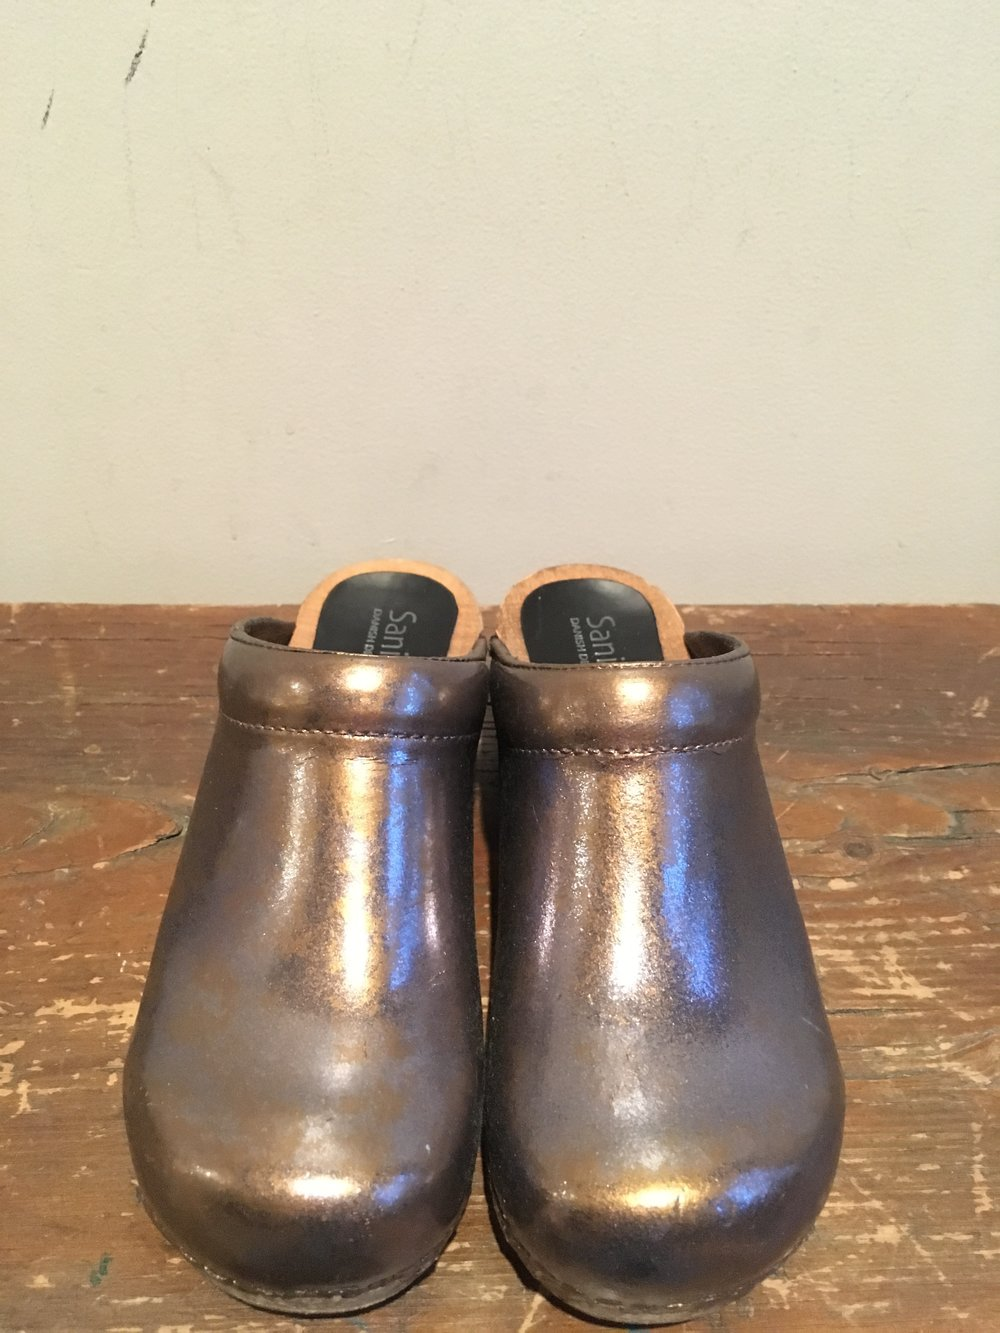 Wooden/Leather clogs refinished with a bronze and silver sparkle mix.